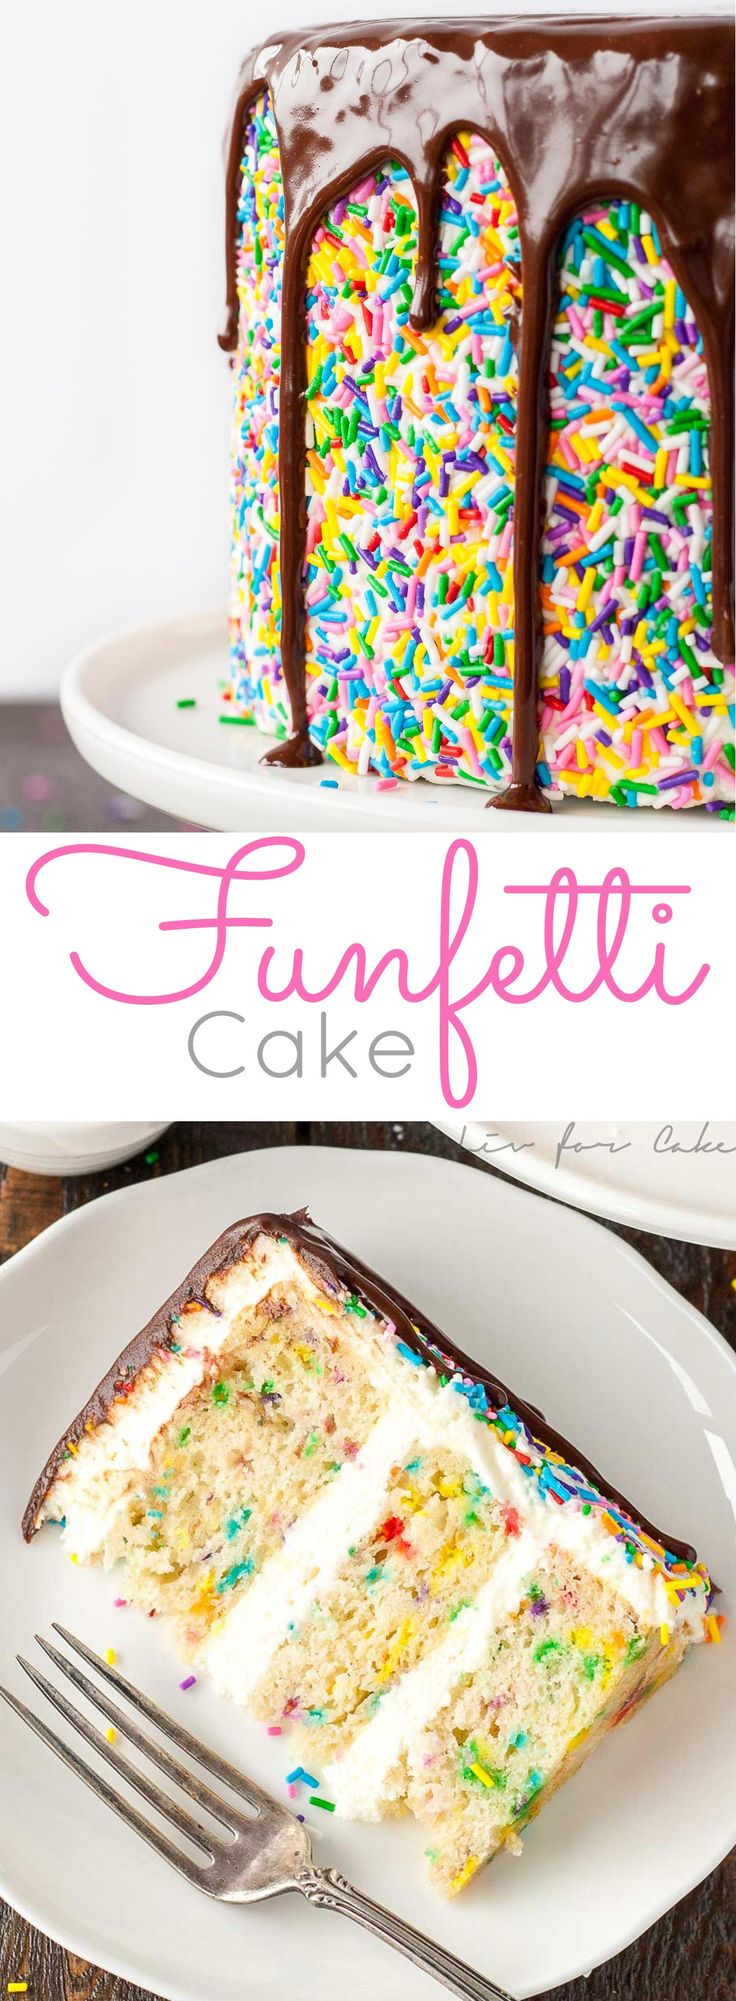 This sprinkle studded vanilla cake is paired with a fluffy cream cheese frosting and topped with a rich dark chocolate ganache.   livforcake.com